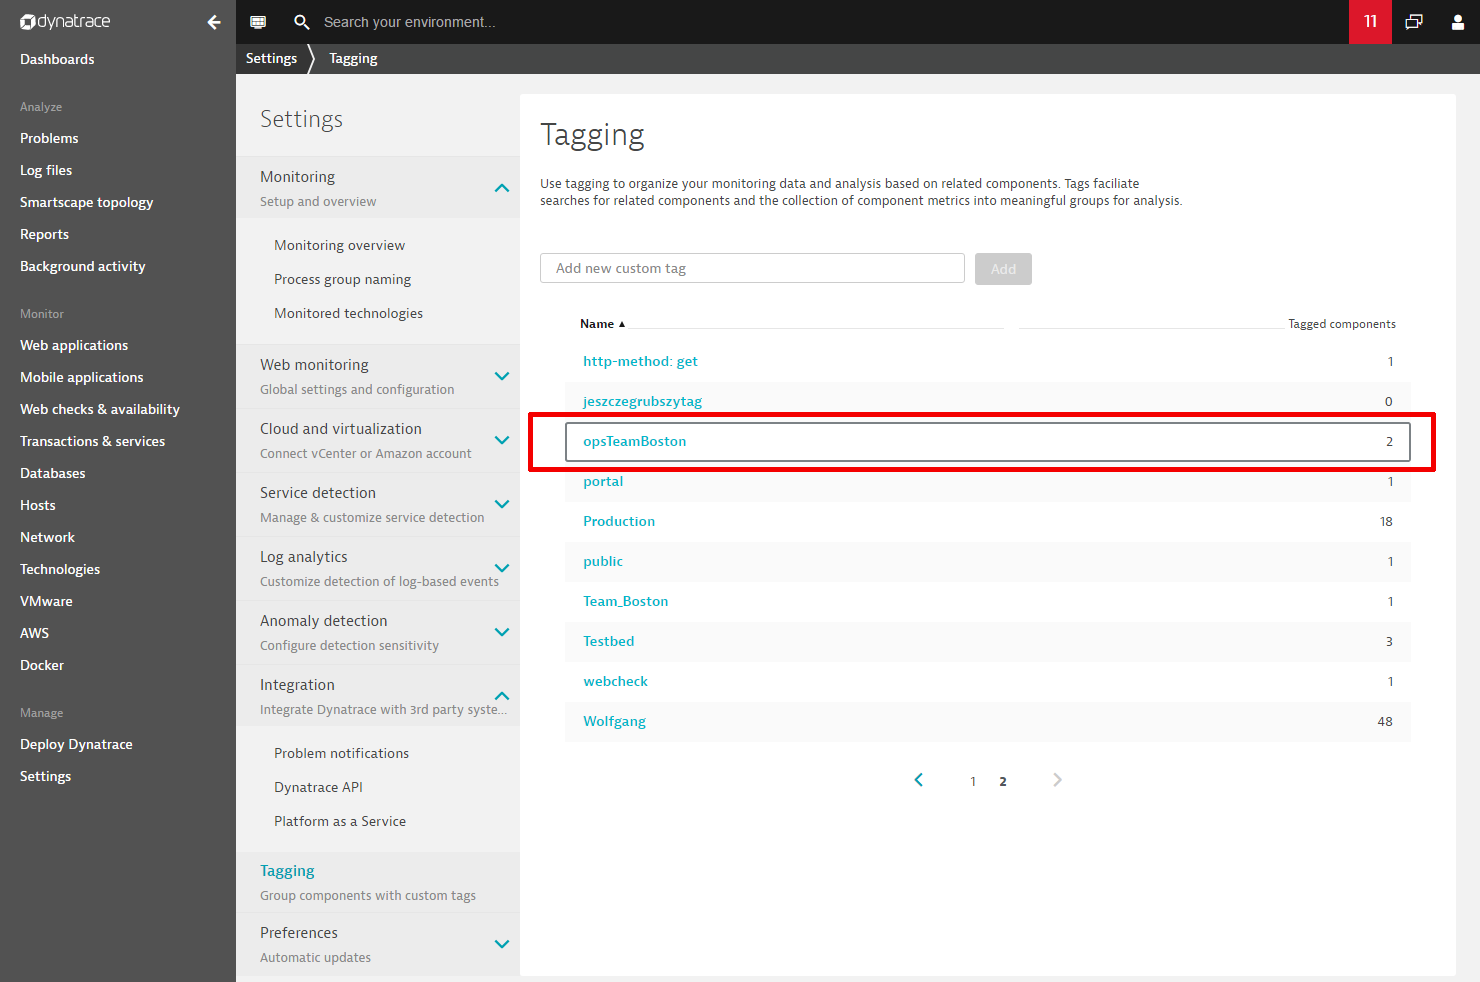 Select a Dynatrace tag